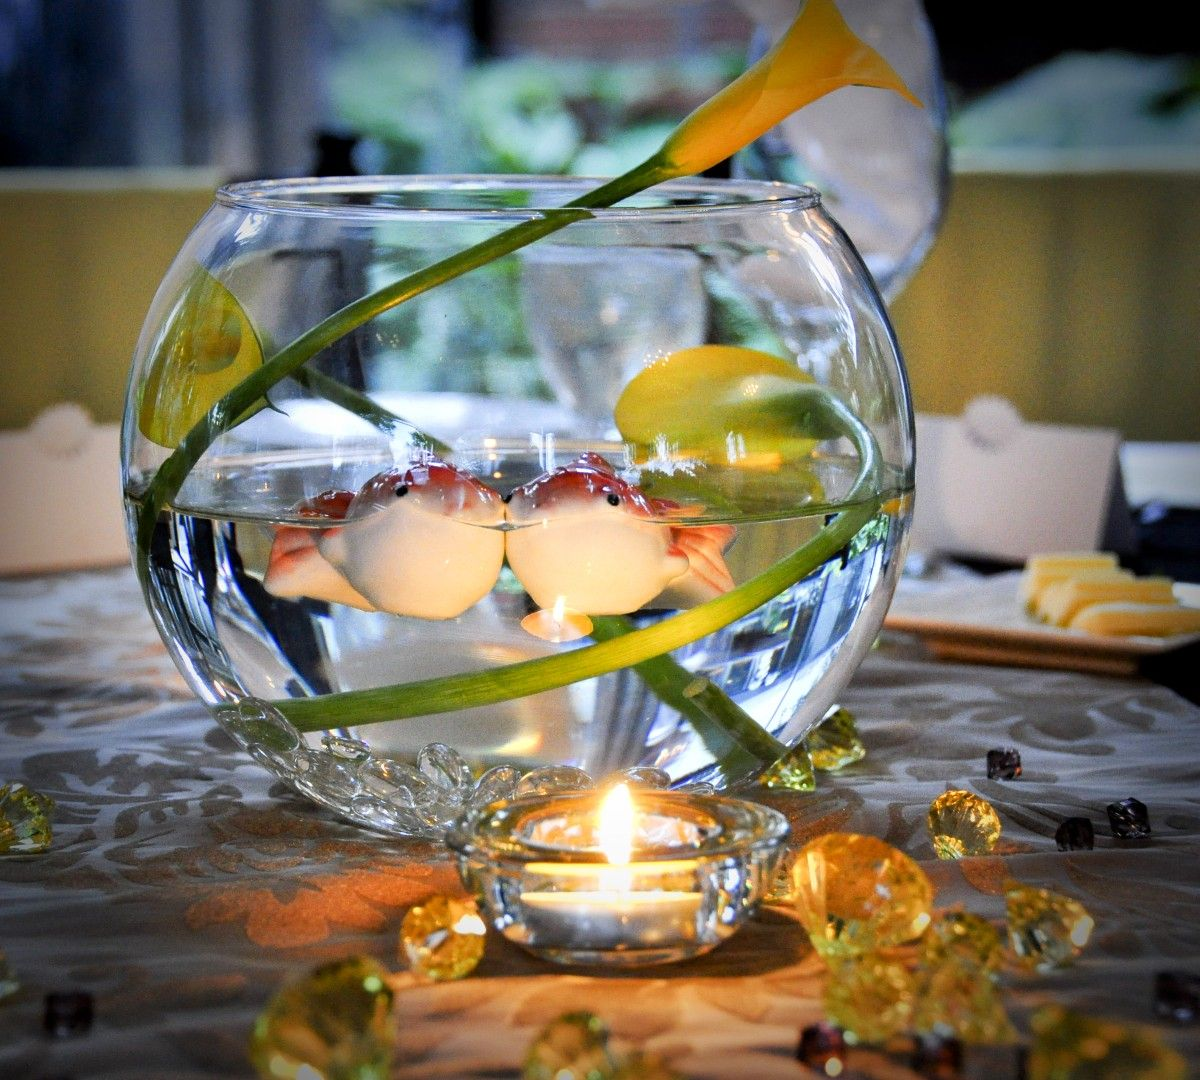 Fish bowl centerpiece fishing themed wedding ideas